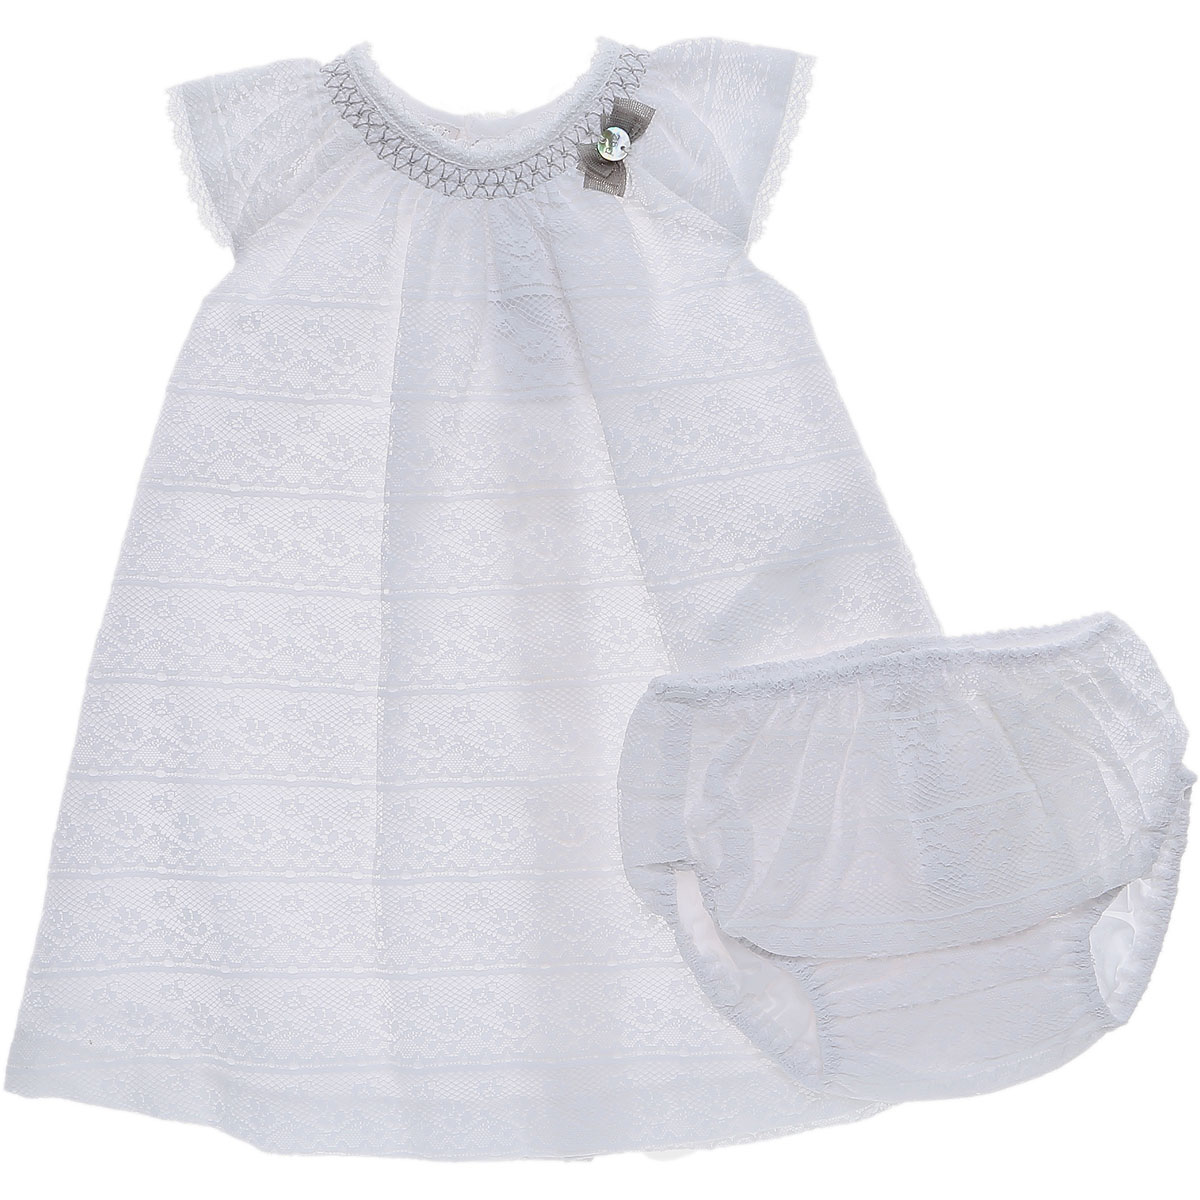 Image of Paz Rodriguez Baby Sets for Girls On Sale in Outlet, White, Cotton, 2017, 12M 12M